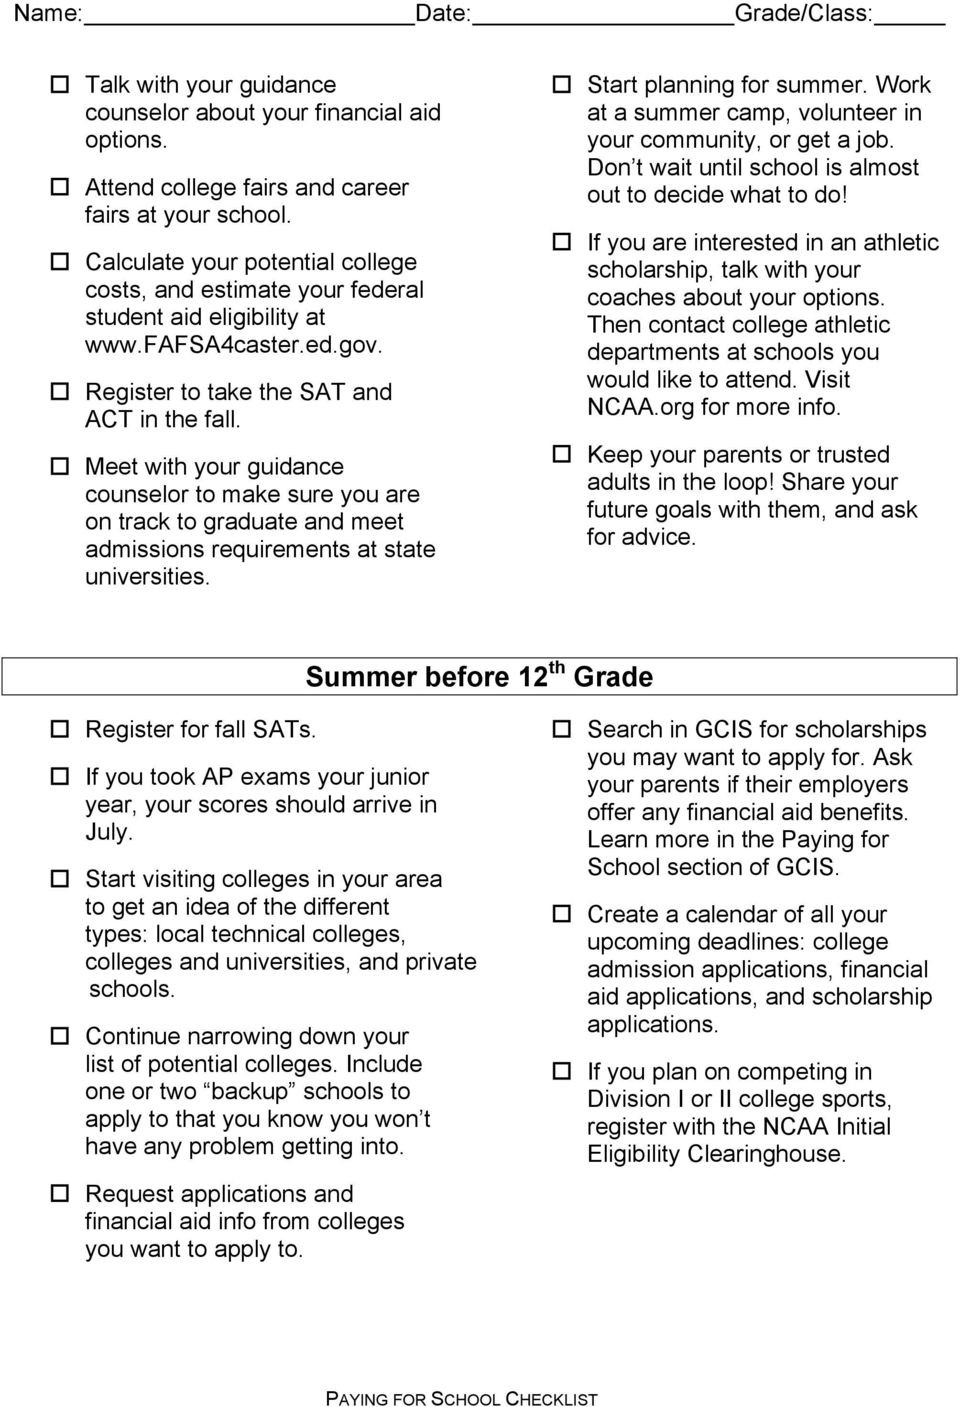 counselor to make sure you are on track to graduate and meet admissions requirements at state universities. Start planning for summer. Work at a summer camp, volunteer in your community, or get a job.